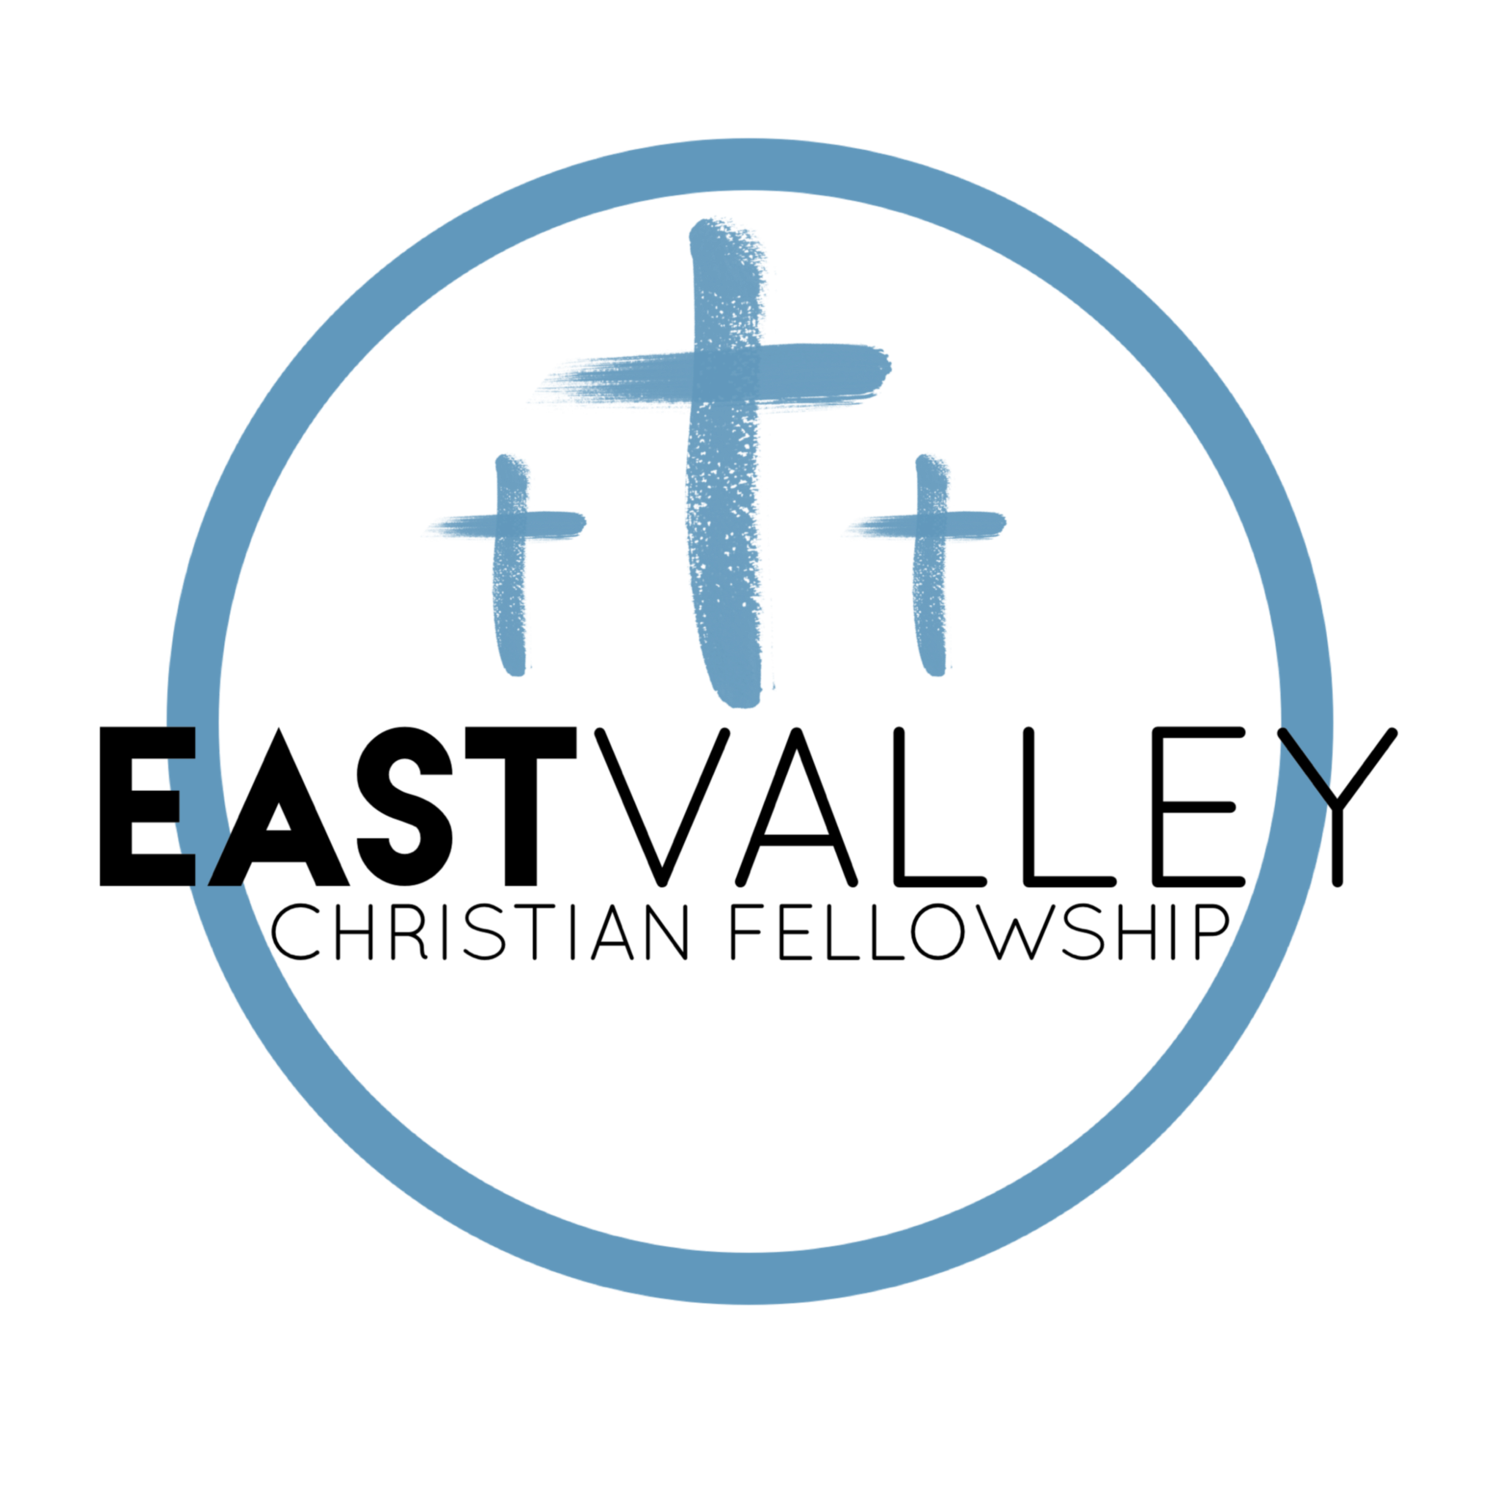 East Valley Christian Fellowship